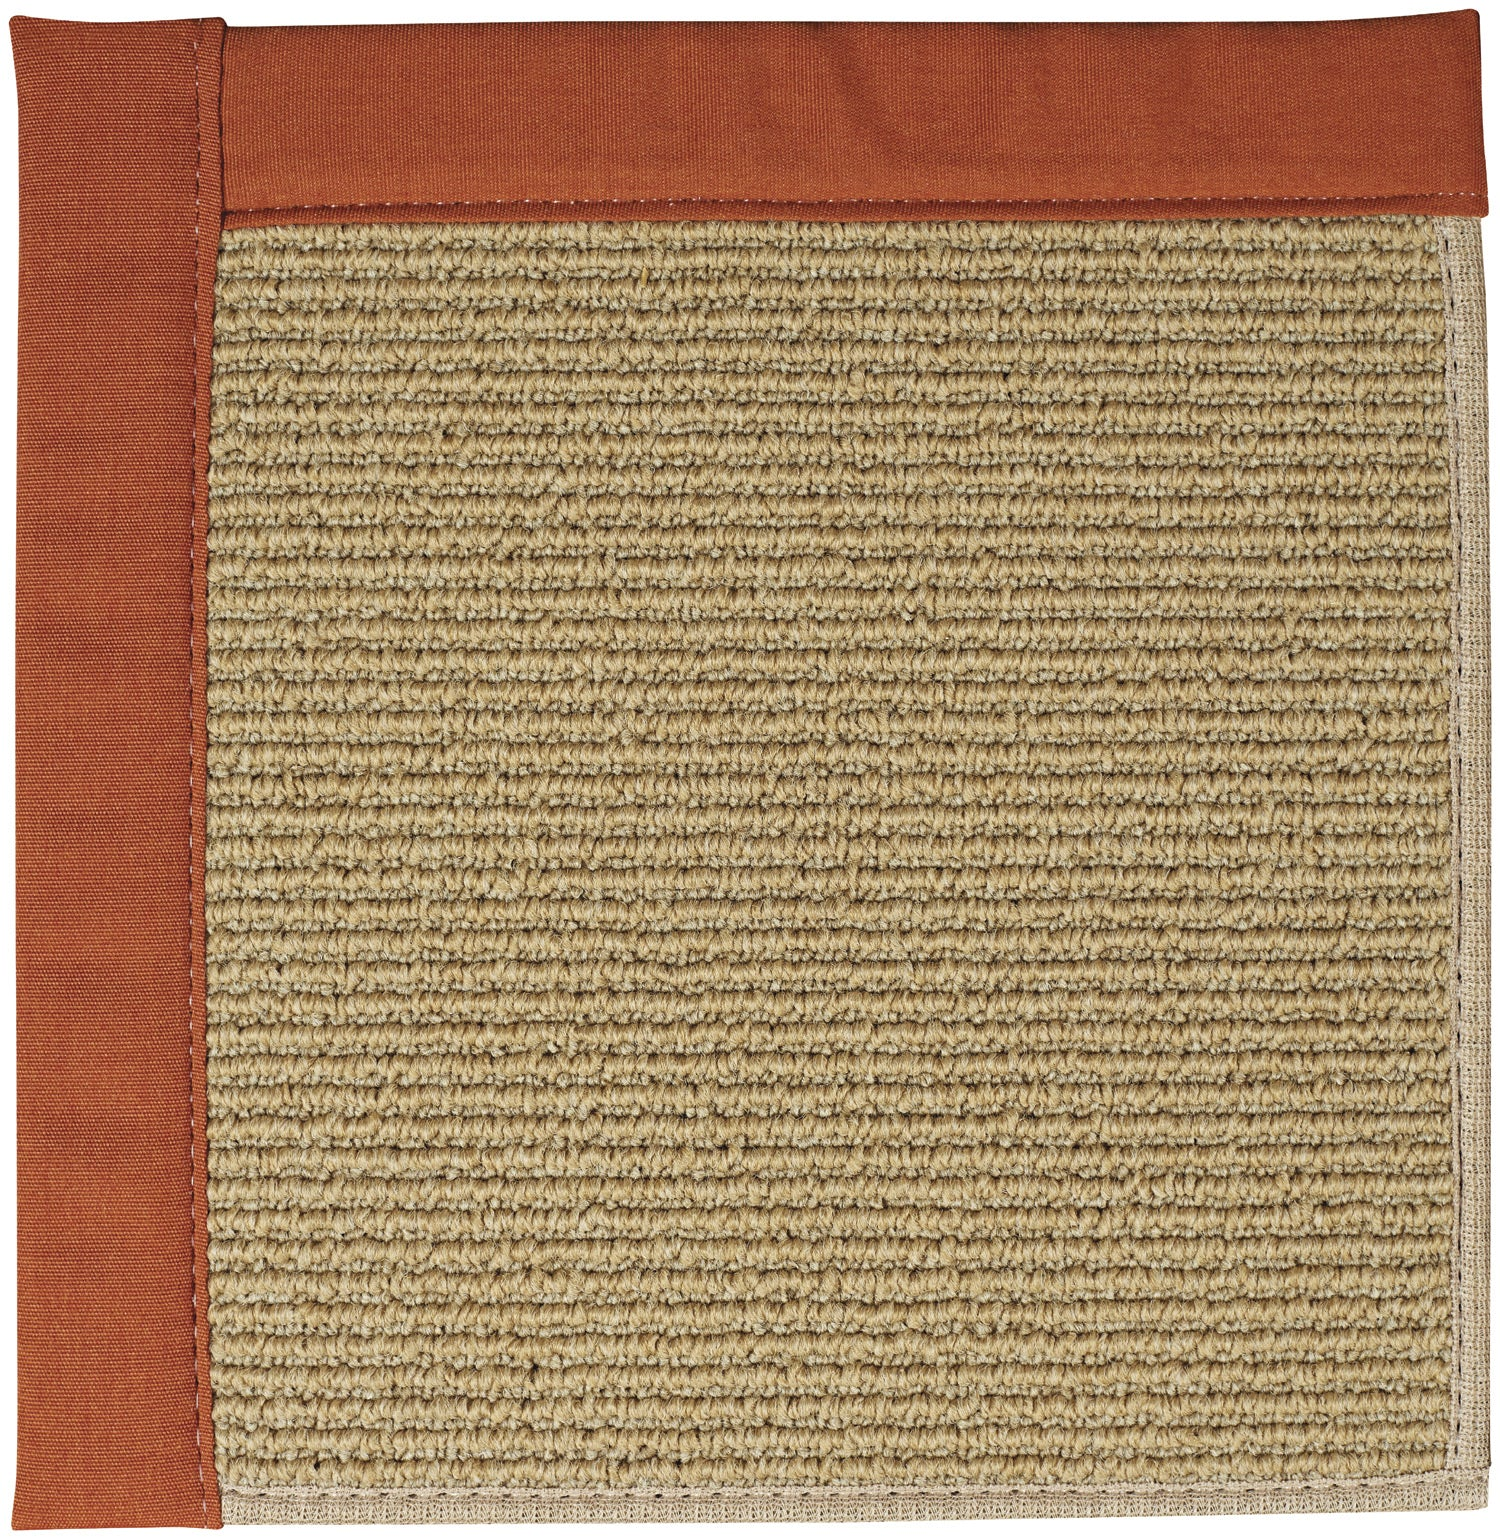 Capel Beachfront Shore 2036 Russett 837 Area Rug main image